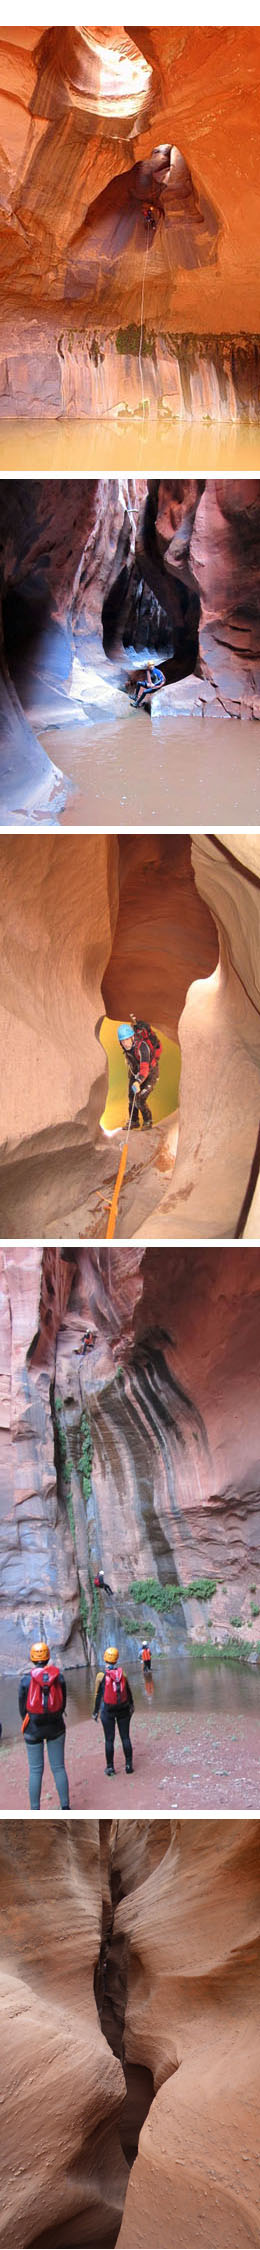 escalante canyoneering